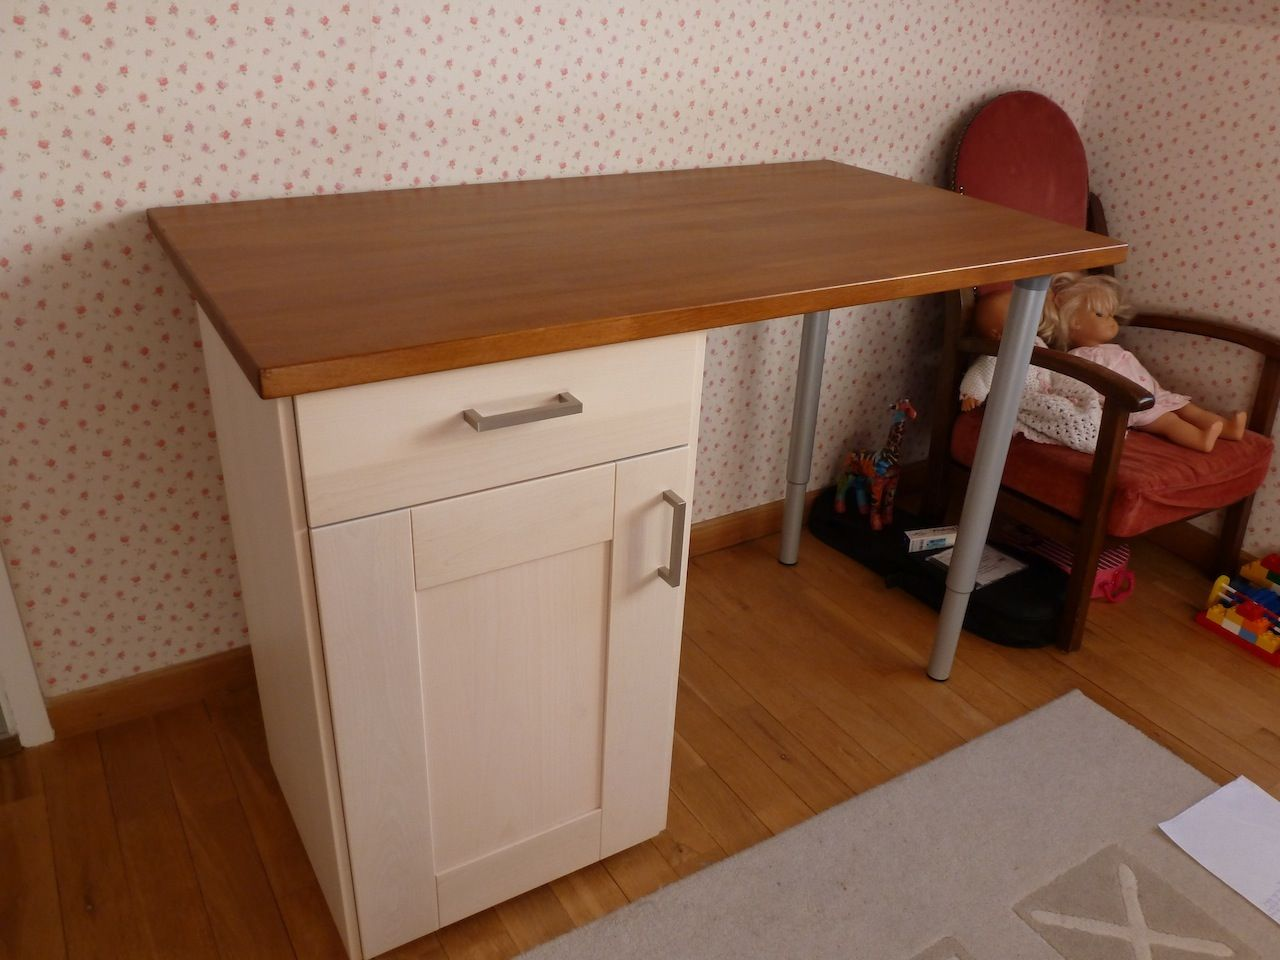 Kitchen Cabinet Desk Units Designs Of Small Modular Image Result For Ikea Wall Unit